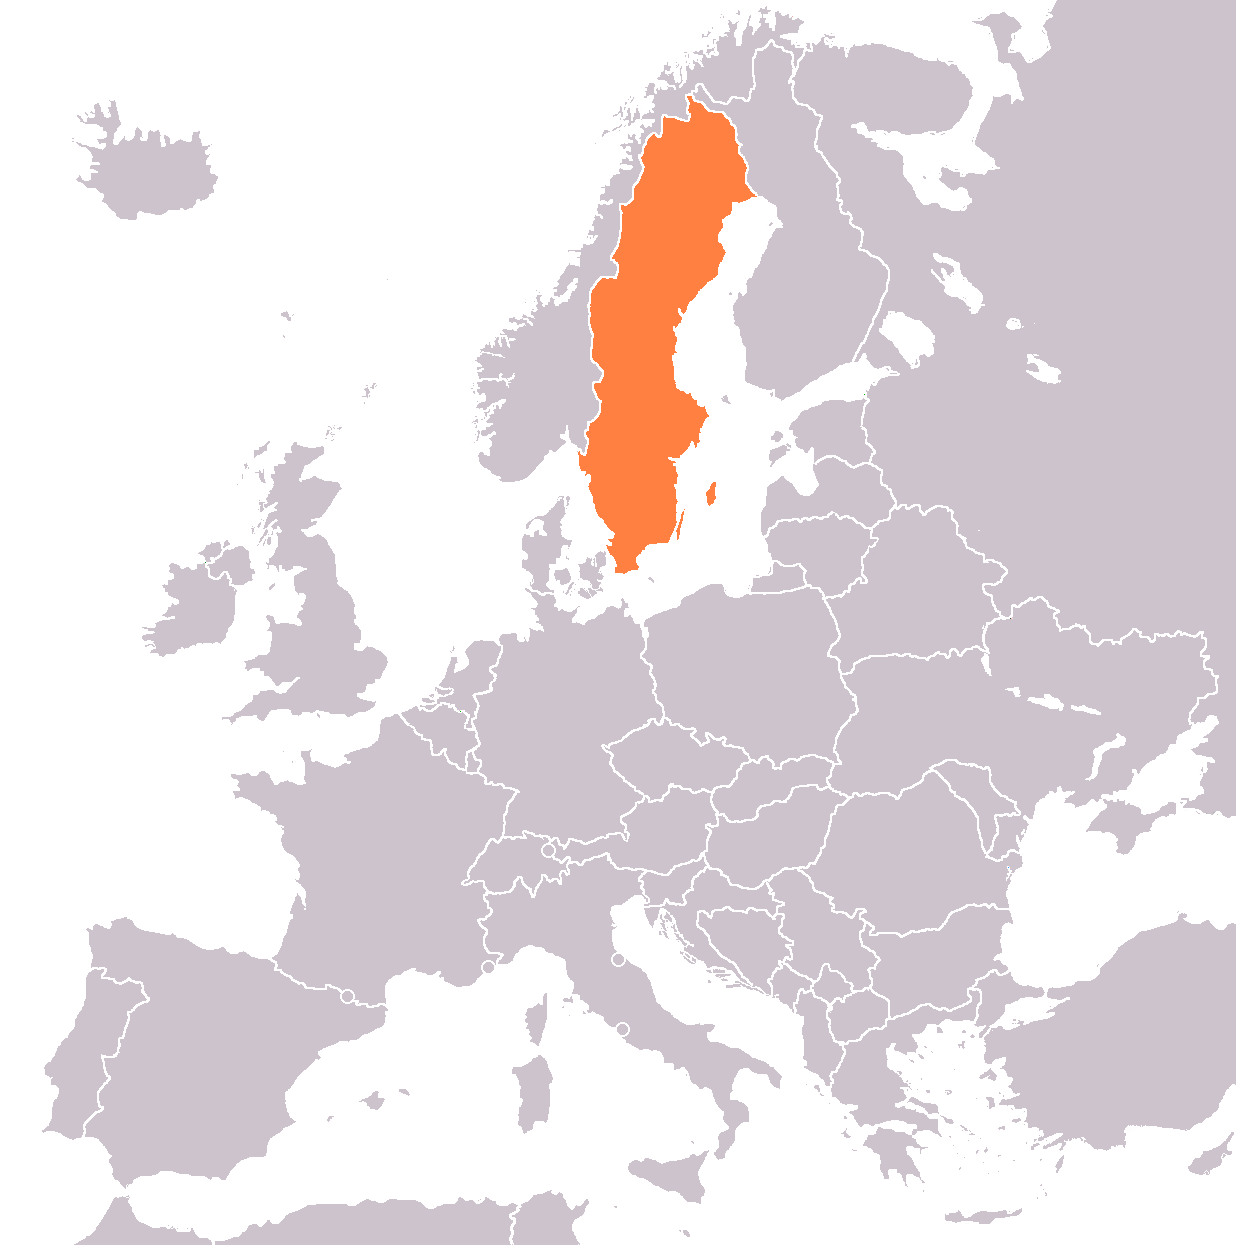 FileMap Of Europe With Sweden In Orange Colorpng Wikimedia Commons - Sweden european map